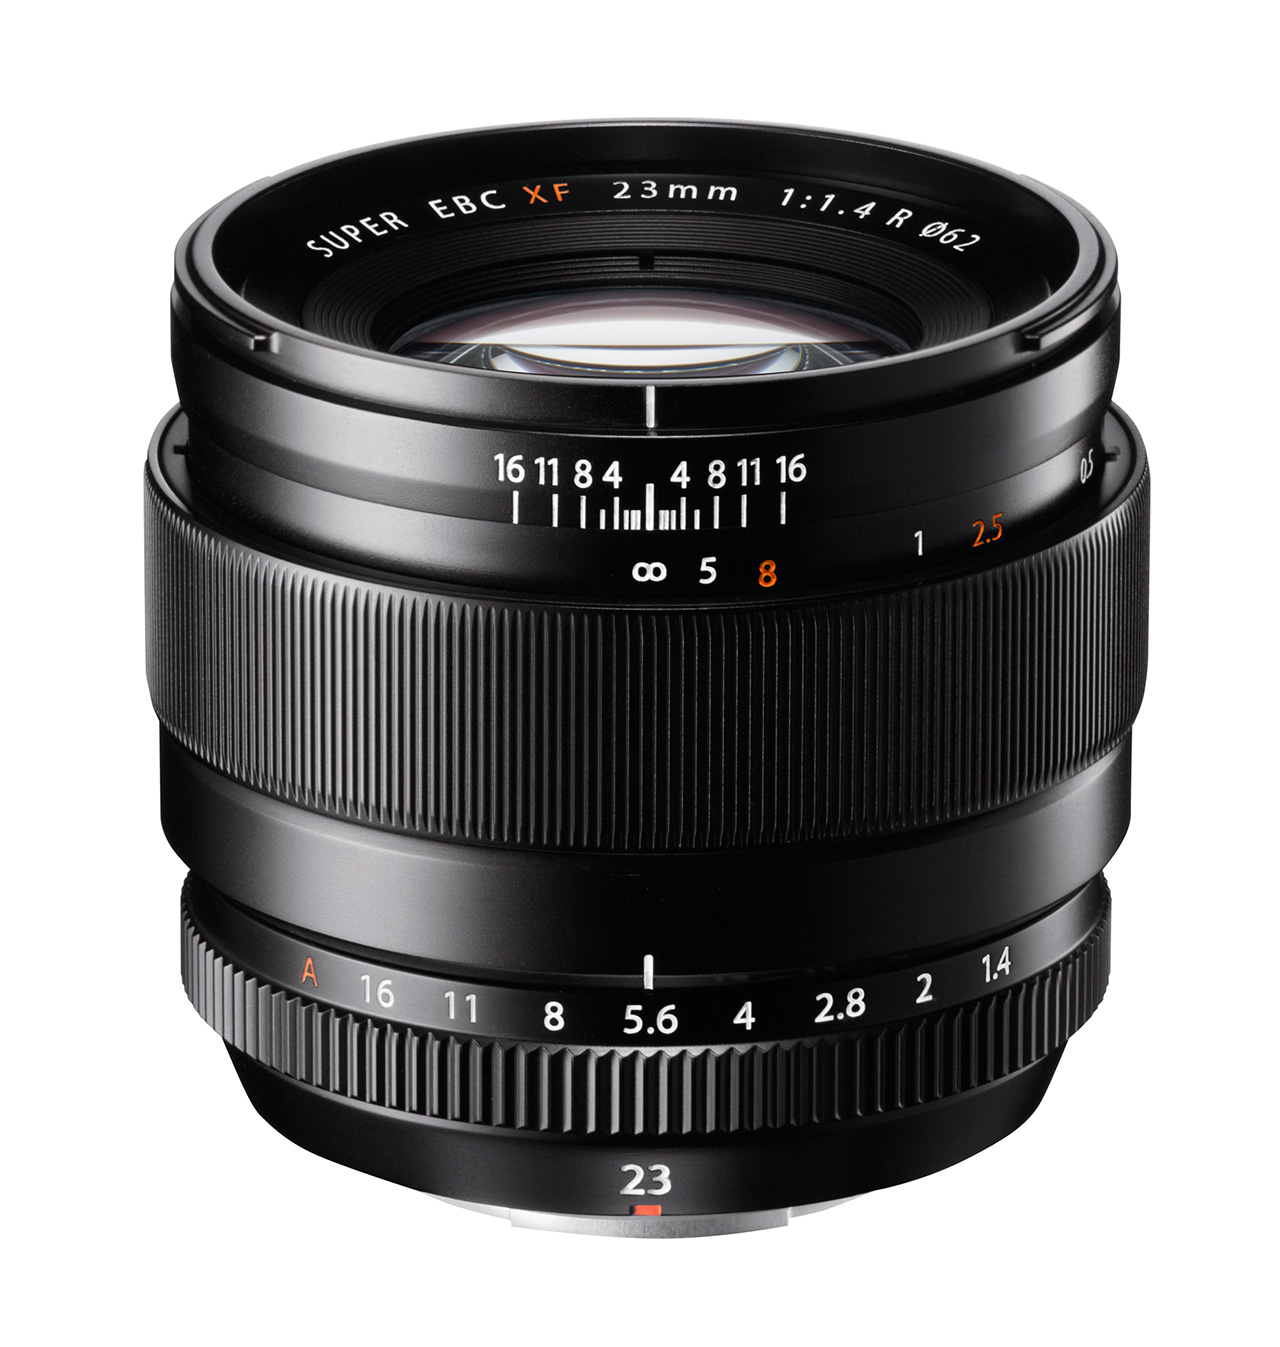 Fast And Wide Fujifilm Releases Xf23mm F14 R For X System Digital 3rd Brand Nikon Lens Cap Modern 62mm Highest Quality Launches Ultra Fujinon Angle